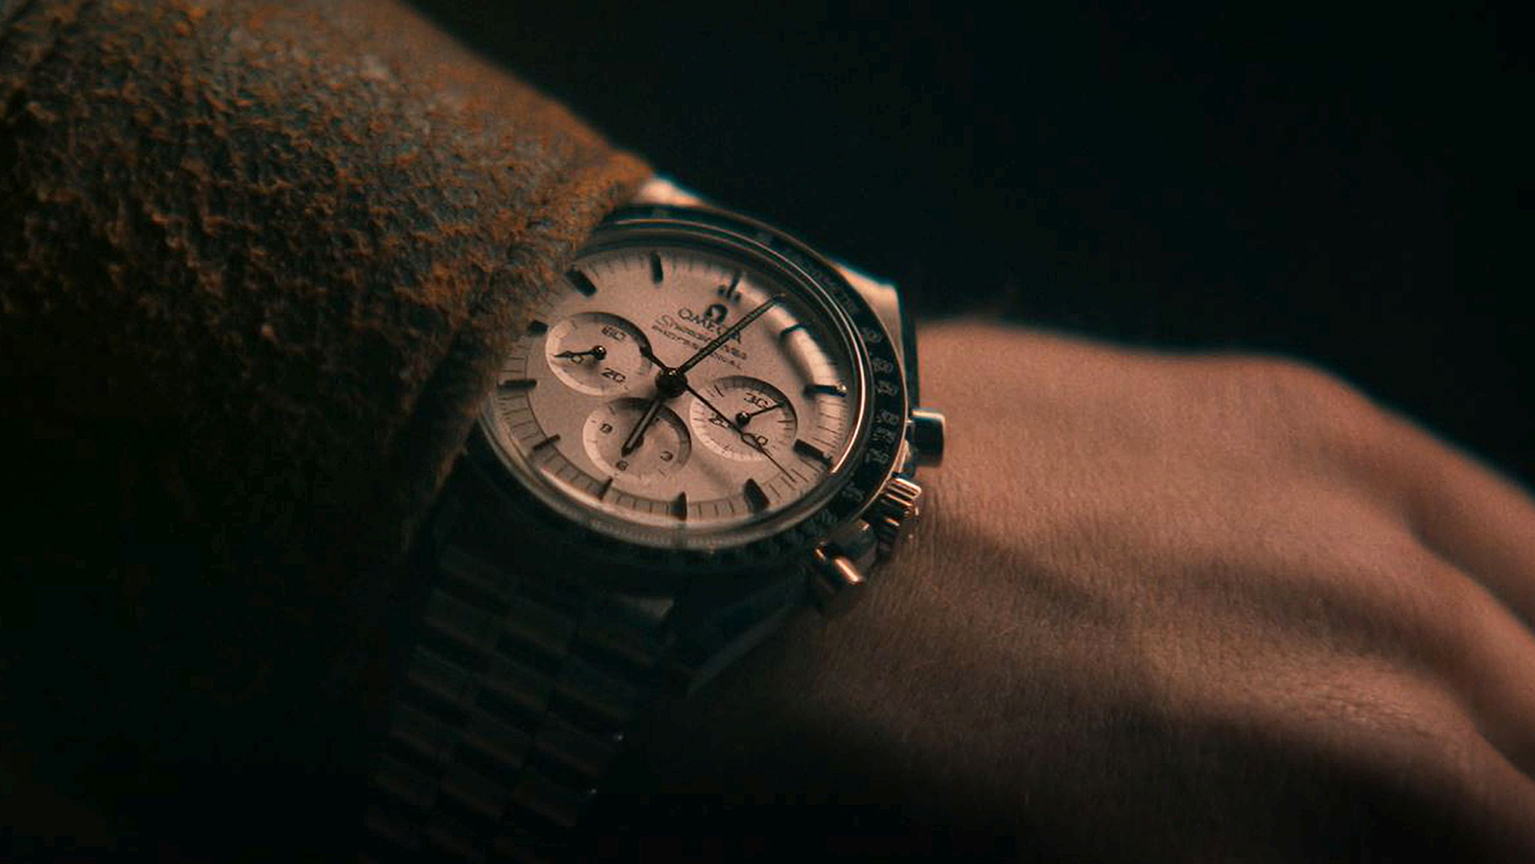 OMEGA Nick Jonas Speedmaster Moonwatch 310.60.42.50.02.001 CanopusG closeup1 low